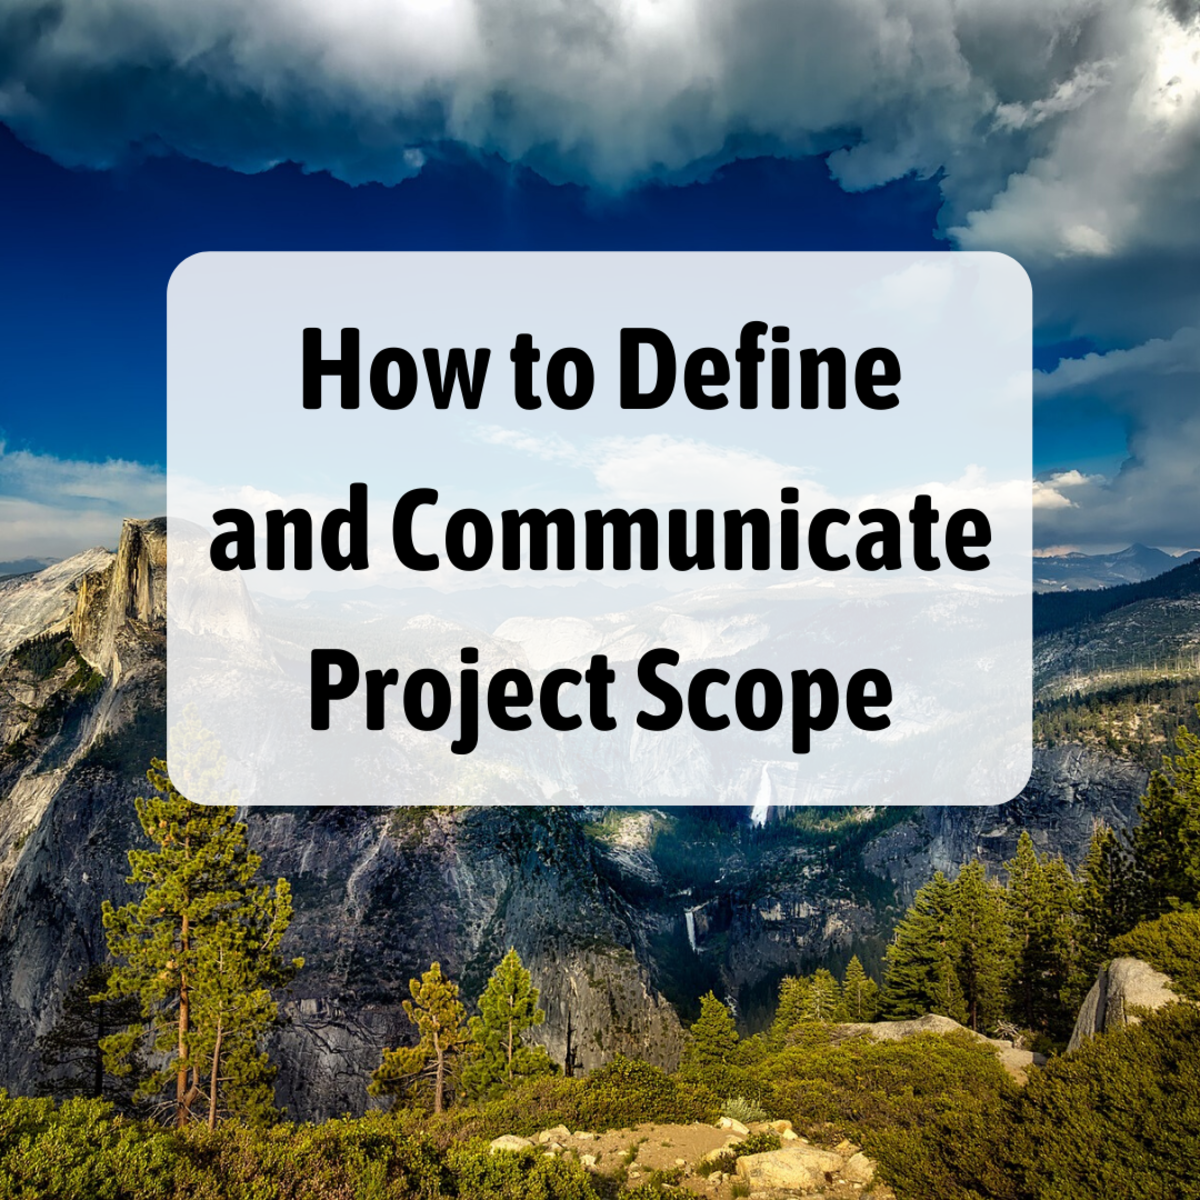 Set yourself up for project success by clearly defining the goals—the scope—at the beginning.